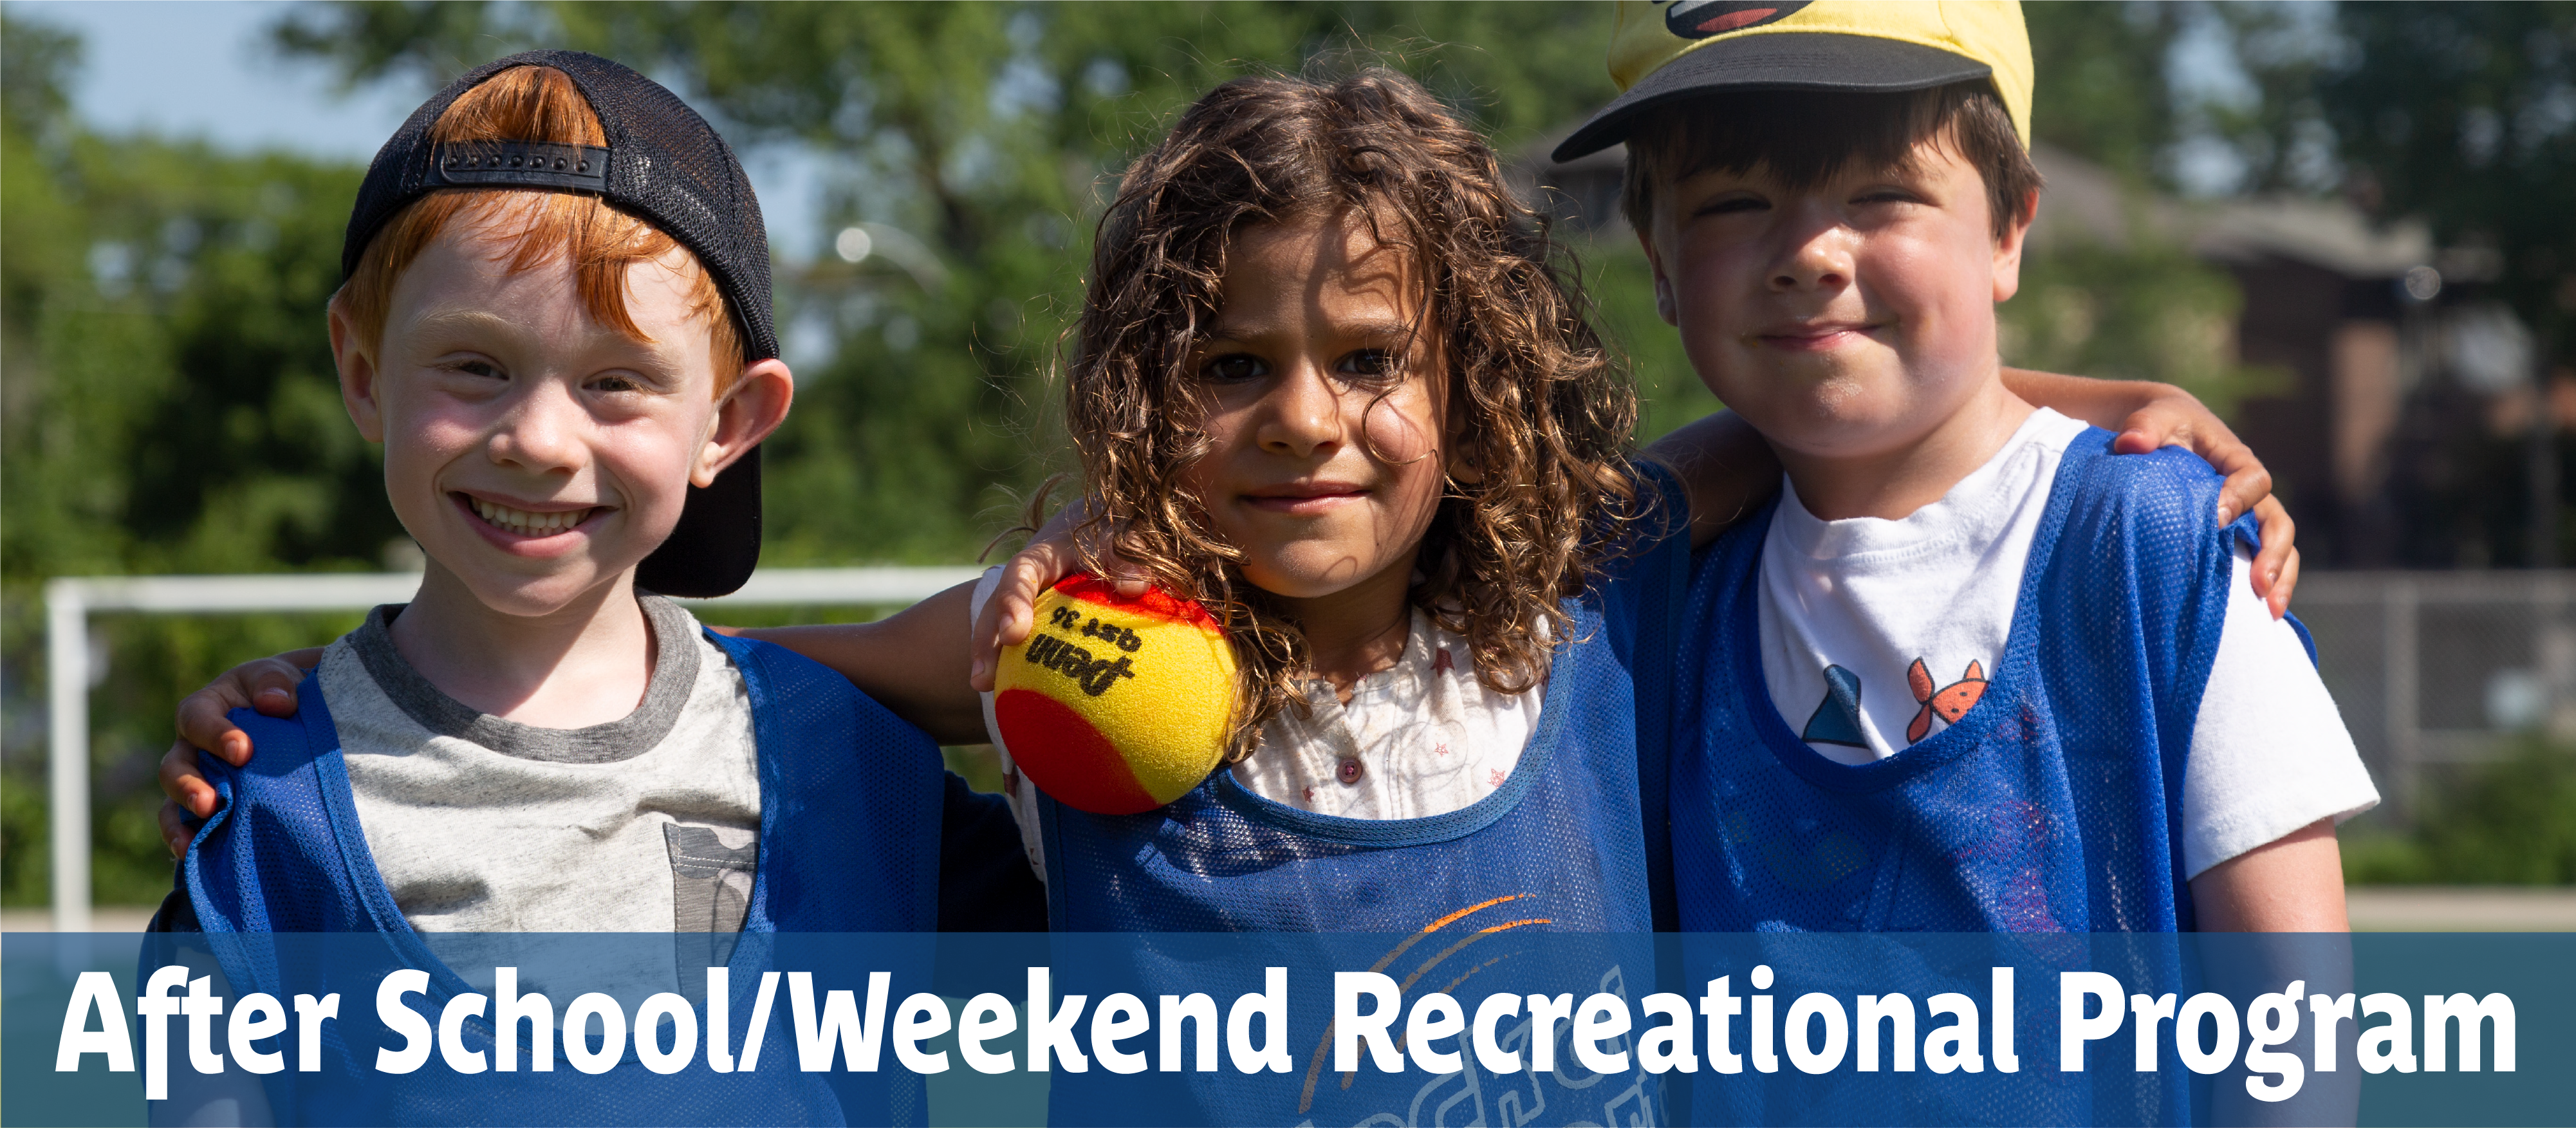 After School/Weekend Recreational Program